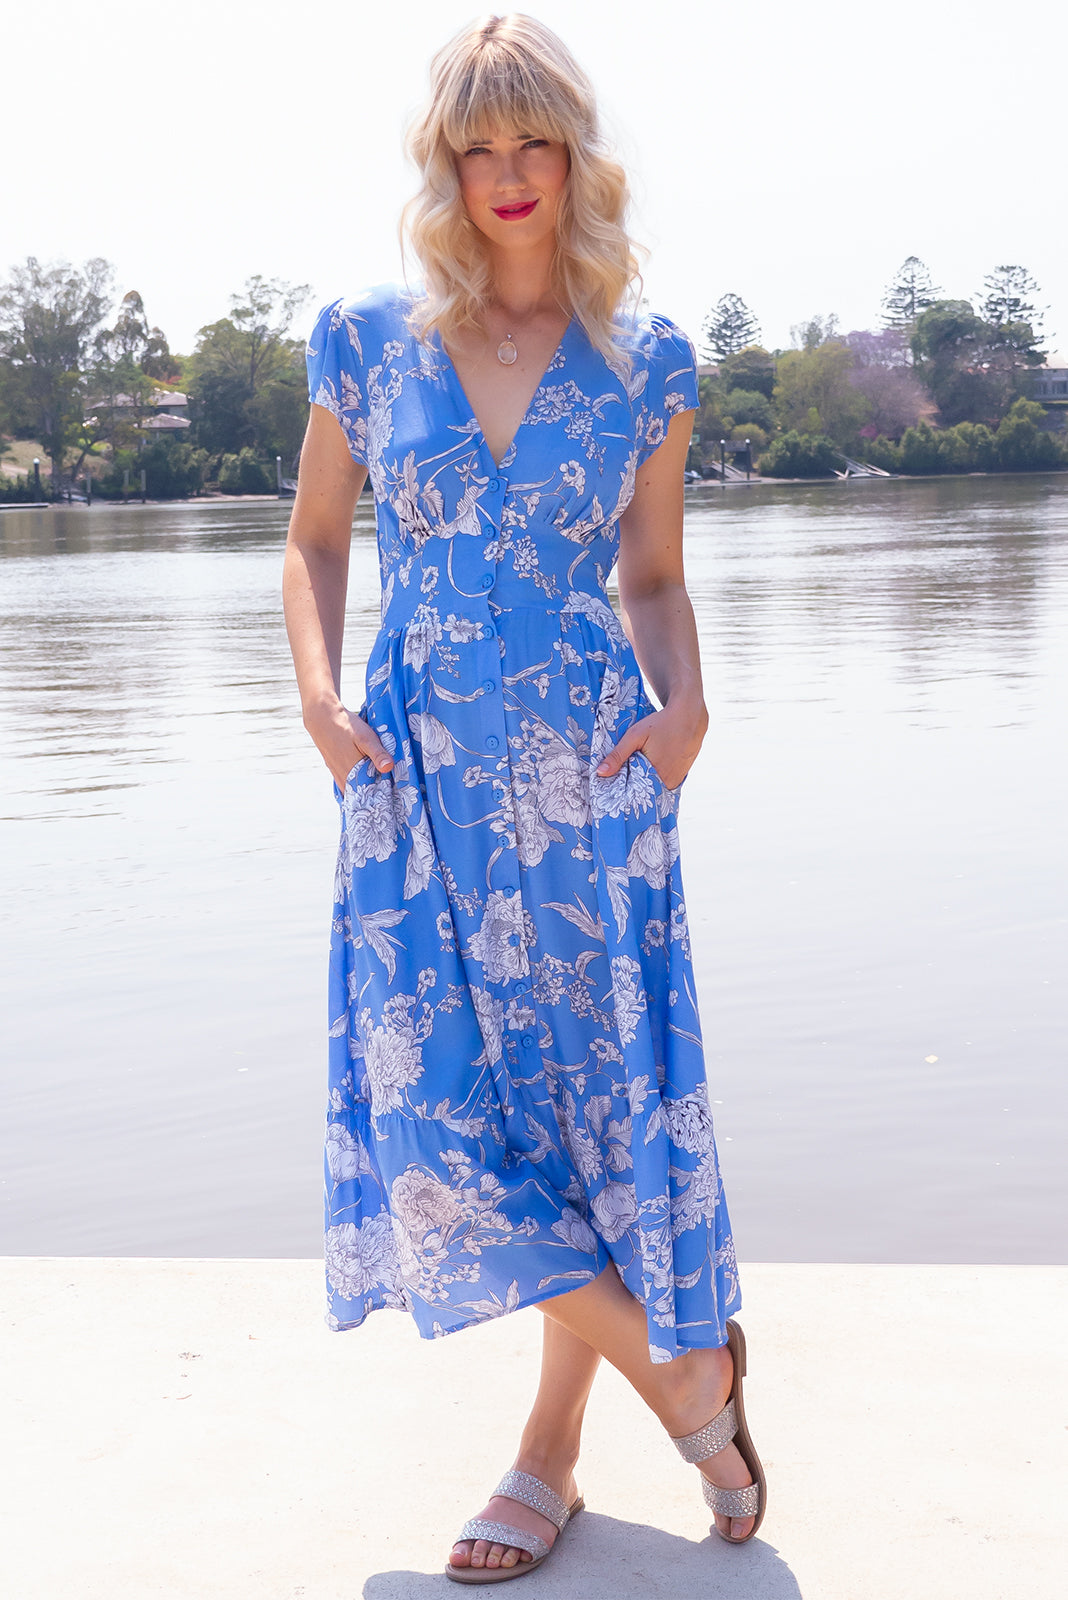 Jude Lisbon Blue Midi Dress, bohemian summer style, 100% viscose, functional button front, softly fitted basque waist, shirred back, cap sleeves, v neck design, deep side pockets, maya blue fabric with large white floral print.